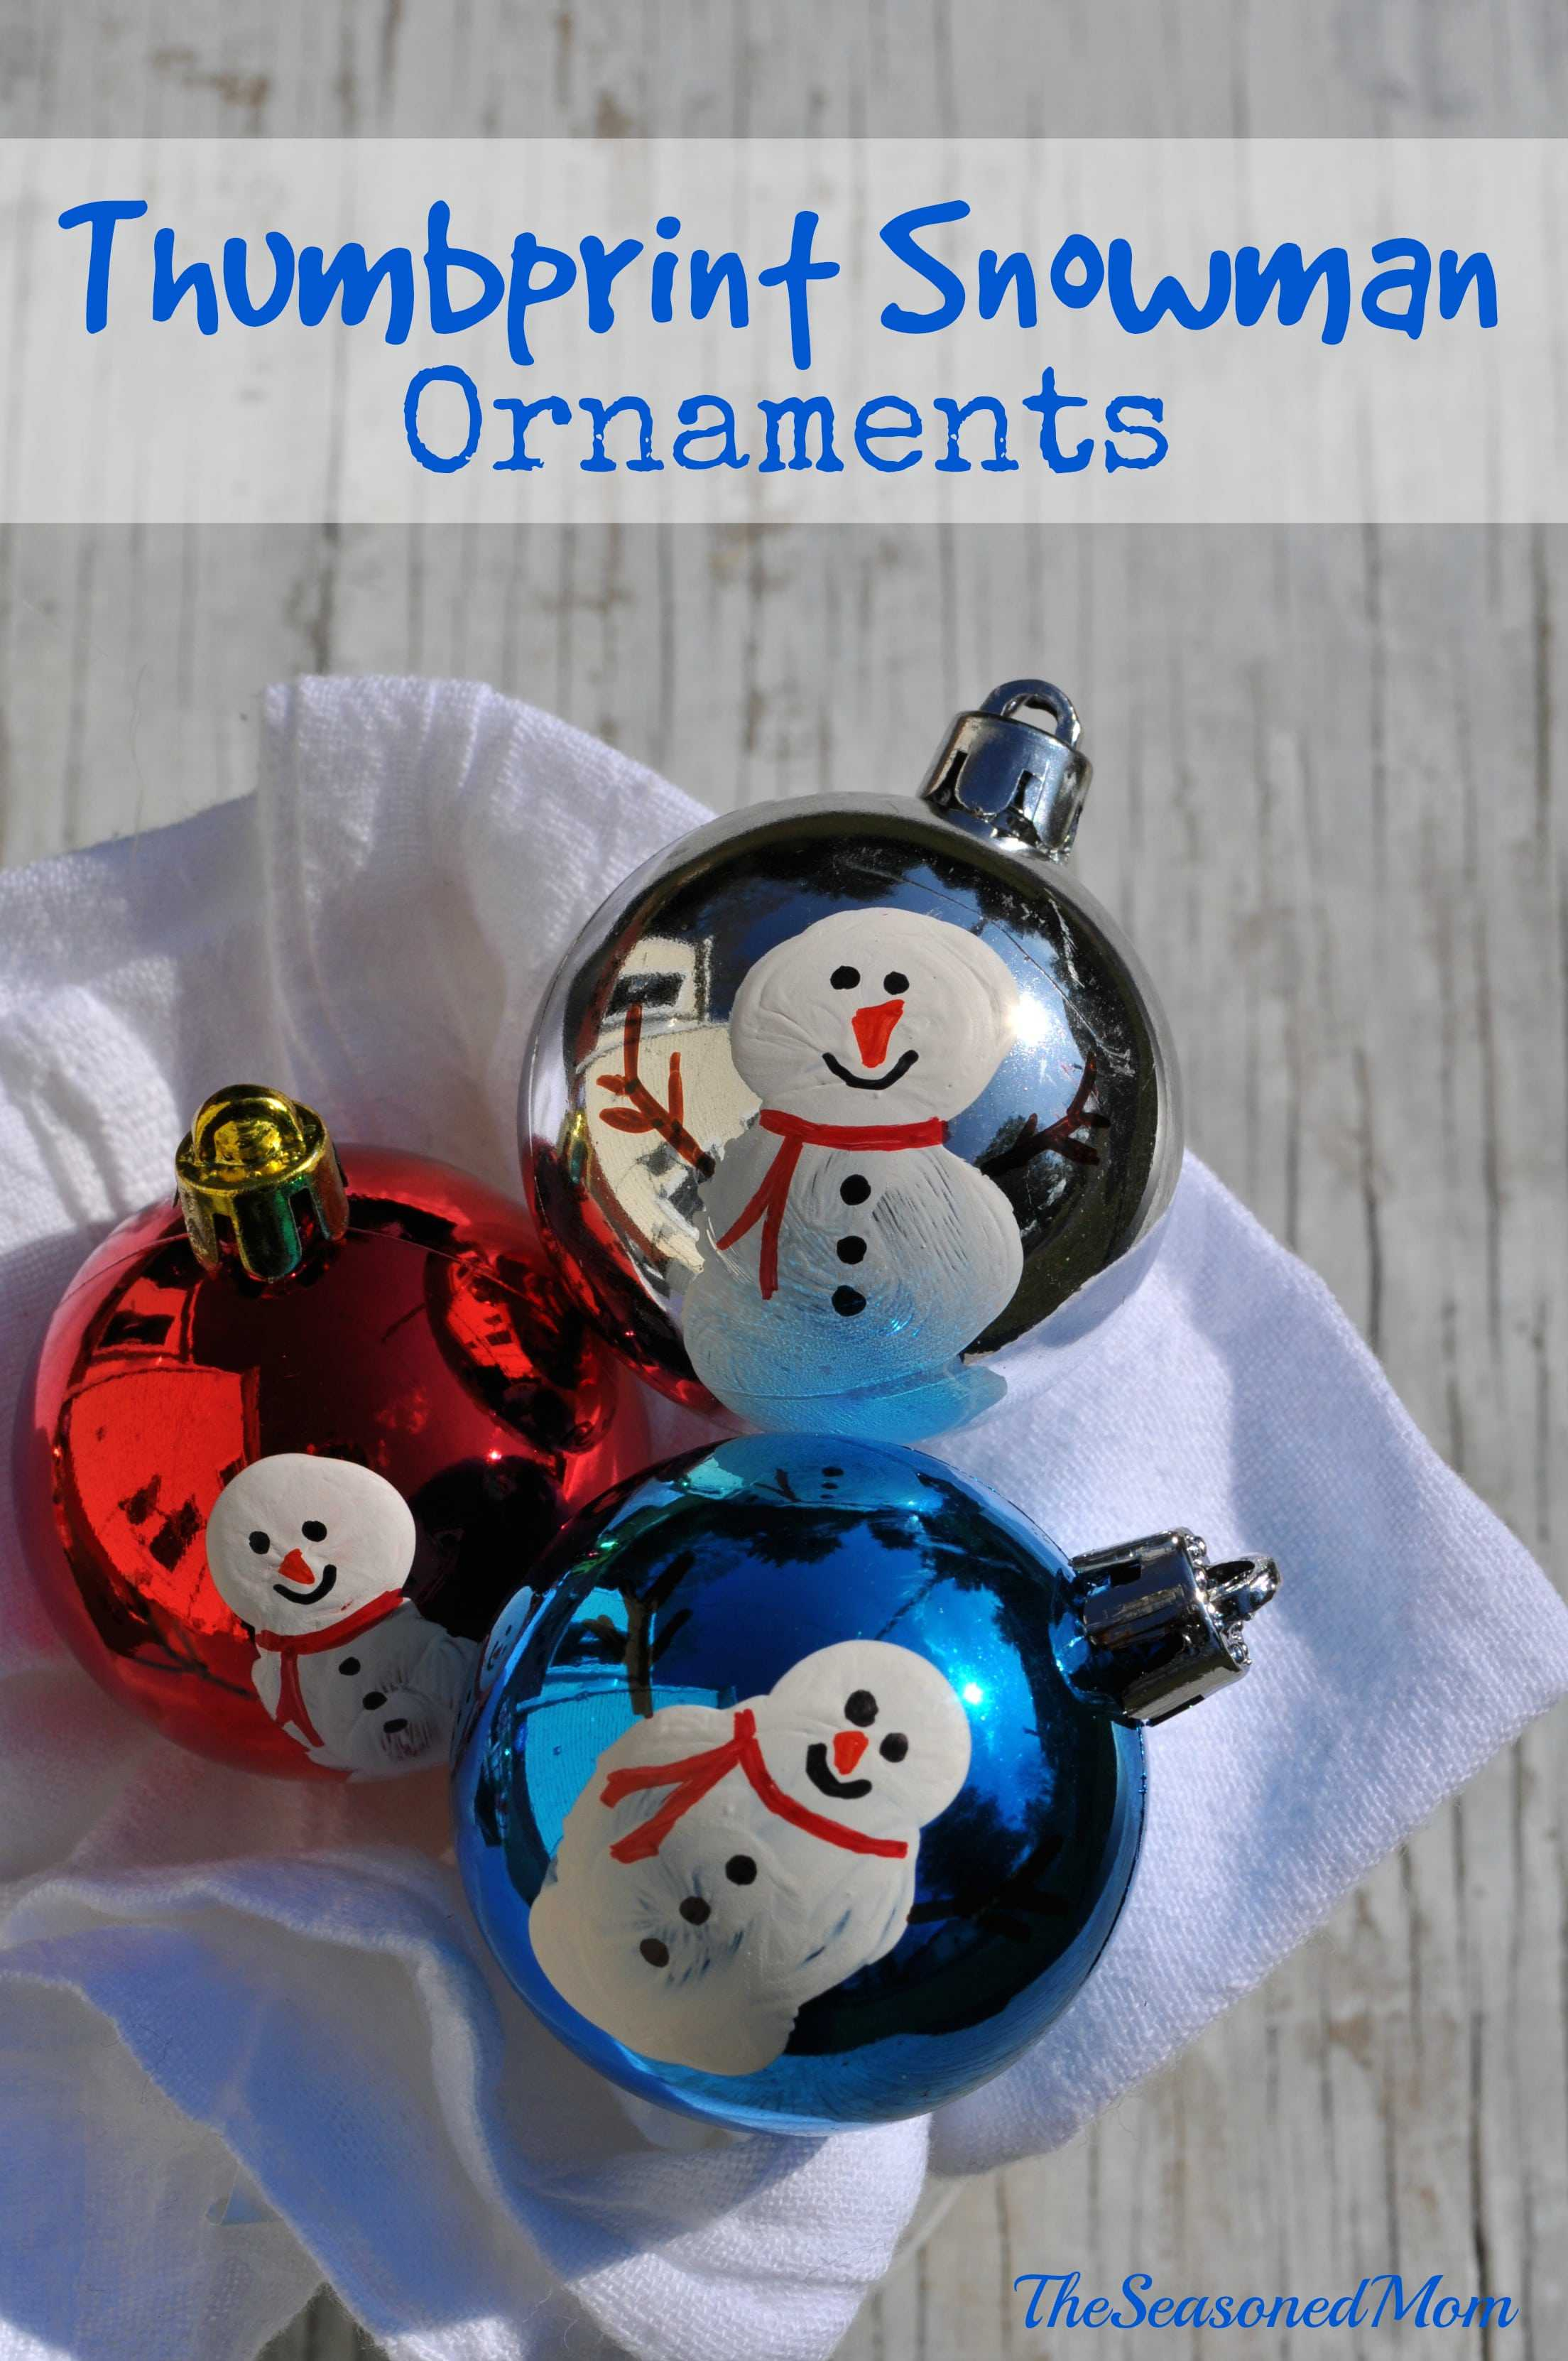 Thumbprint Snowman Ornaments